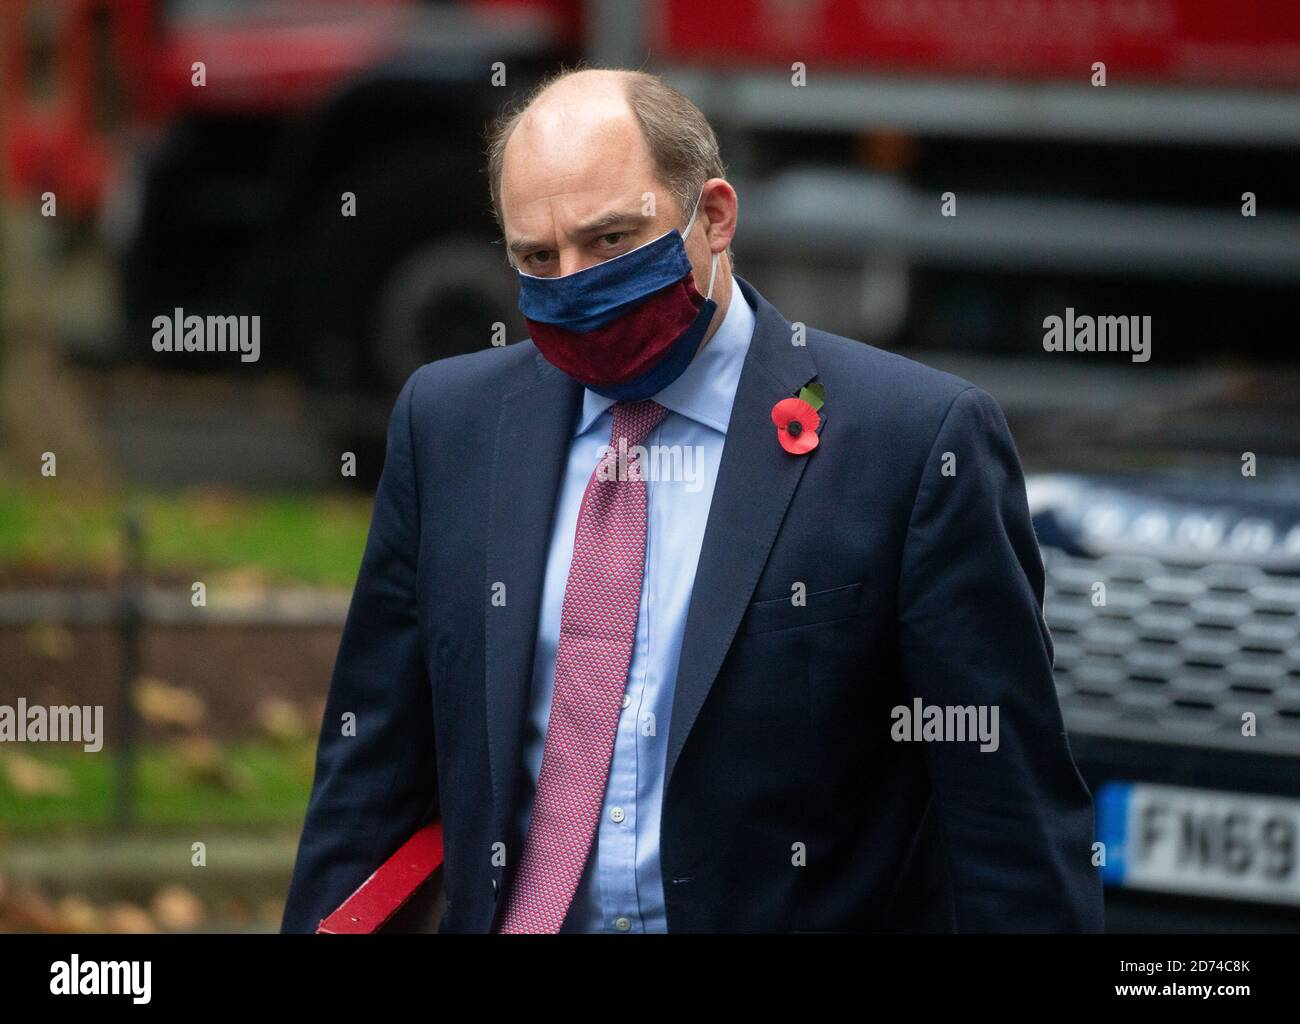 London, UK. 20th Oct, 2020. Ben Wallace, Secretary of State for Defence, arrives for the weekly Cabinet meeting. Credit: Mark Thomas/Alamy Live News Stock Photo